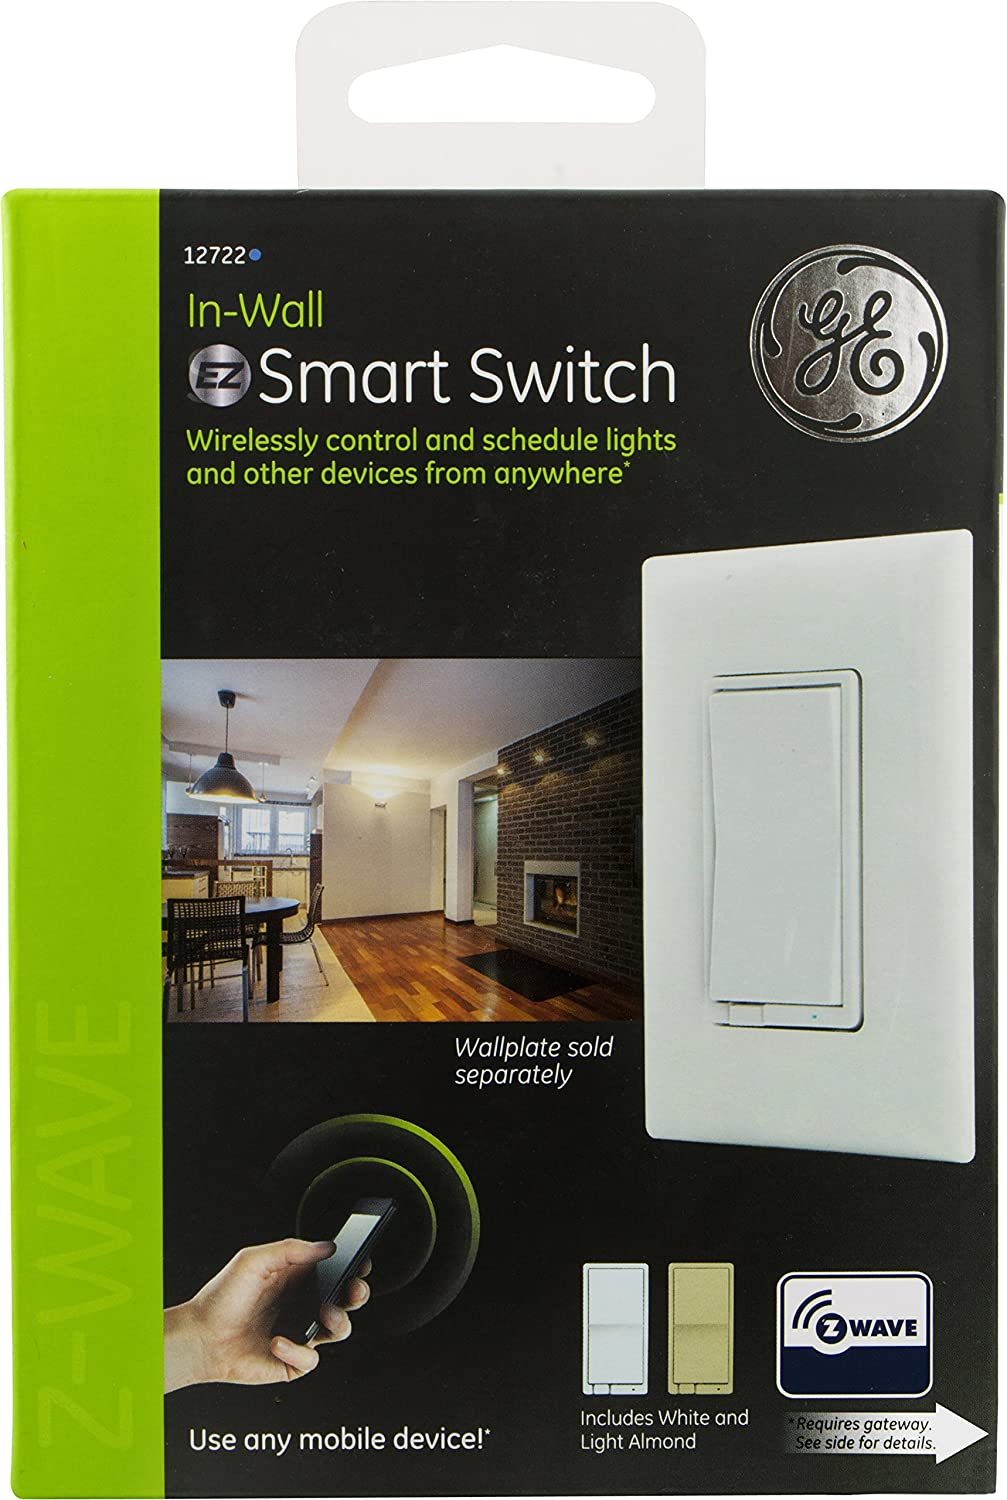 Ge Z Wave Wireless Smart Lighting Control Light Switch On Off You May Read About Intermediate What Is Paddle In Wall White Lt Almond Paddles Repeater Range Extender Zwave Hub Required